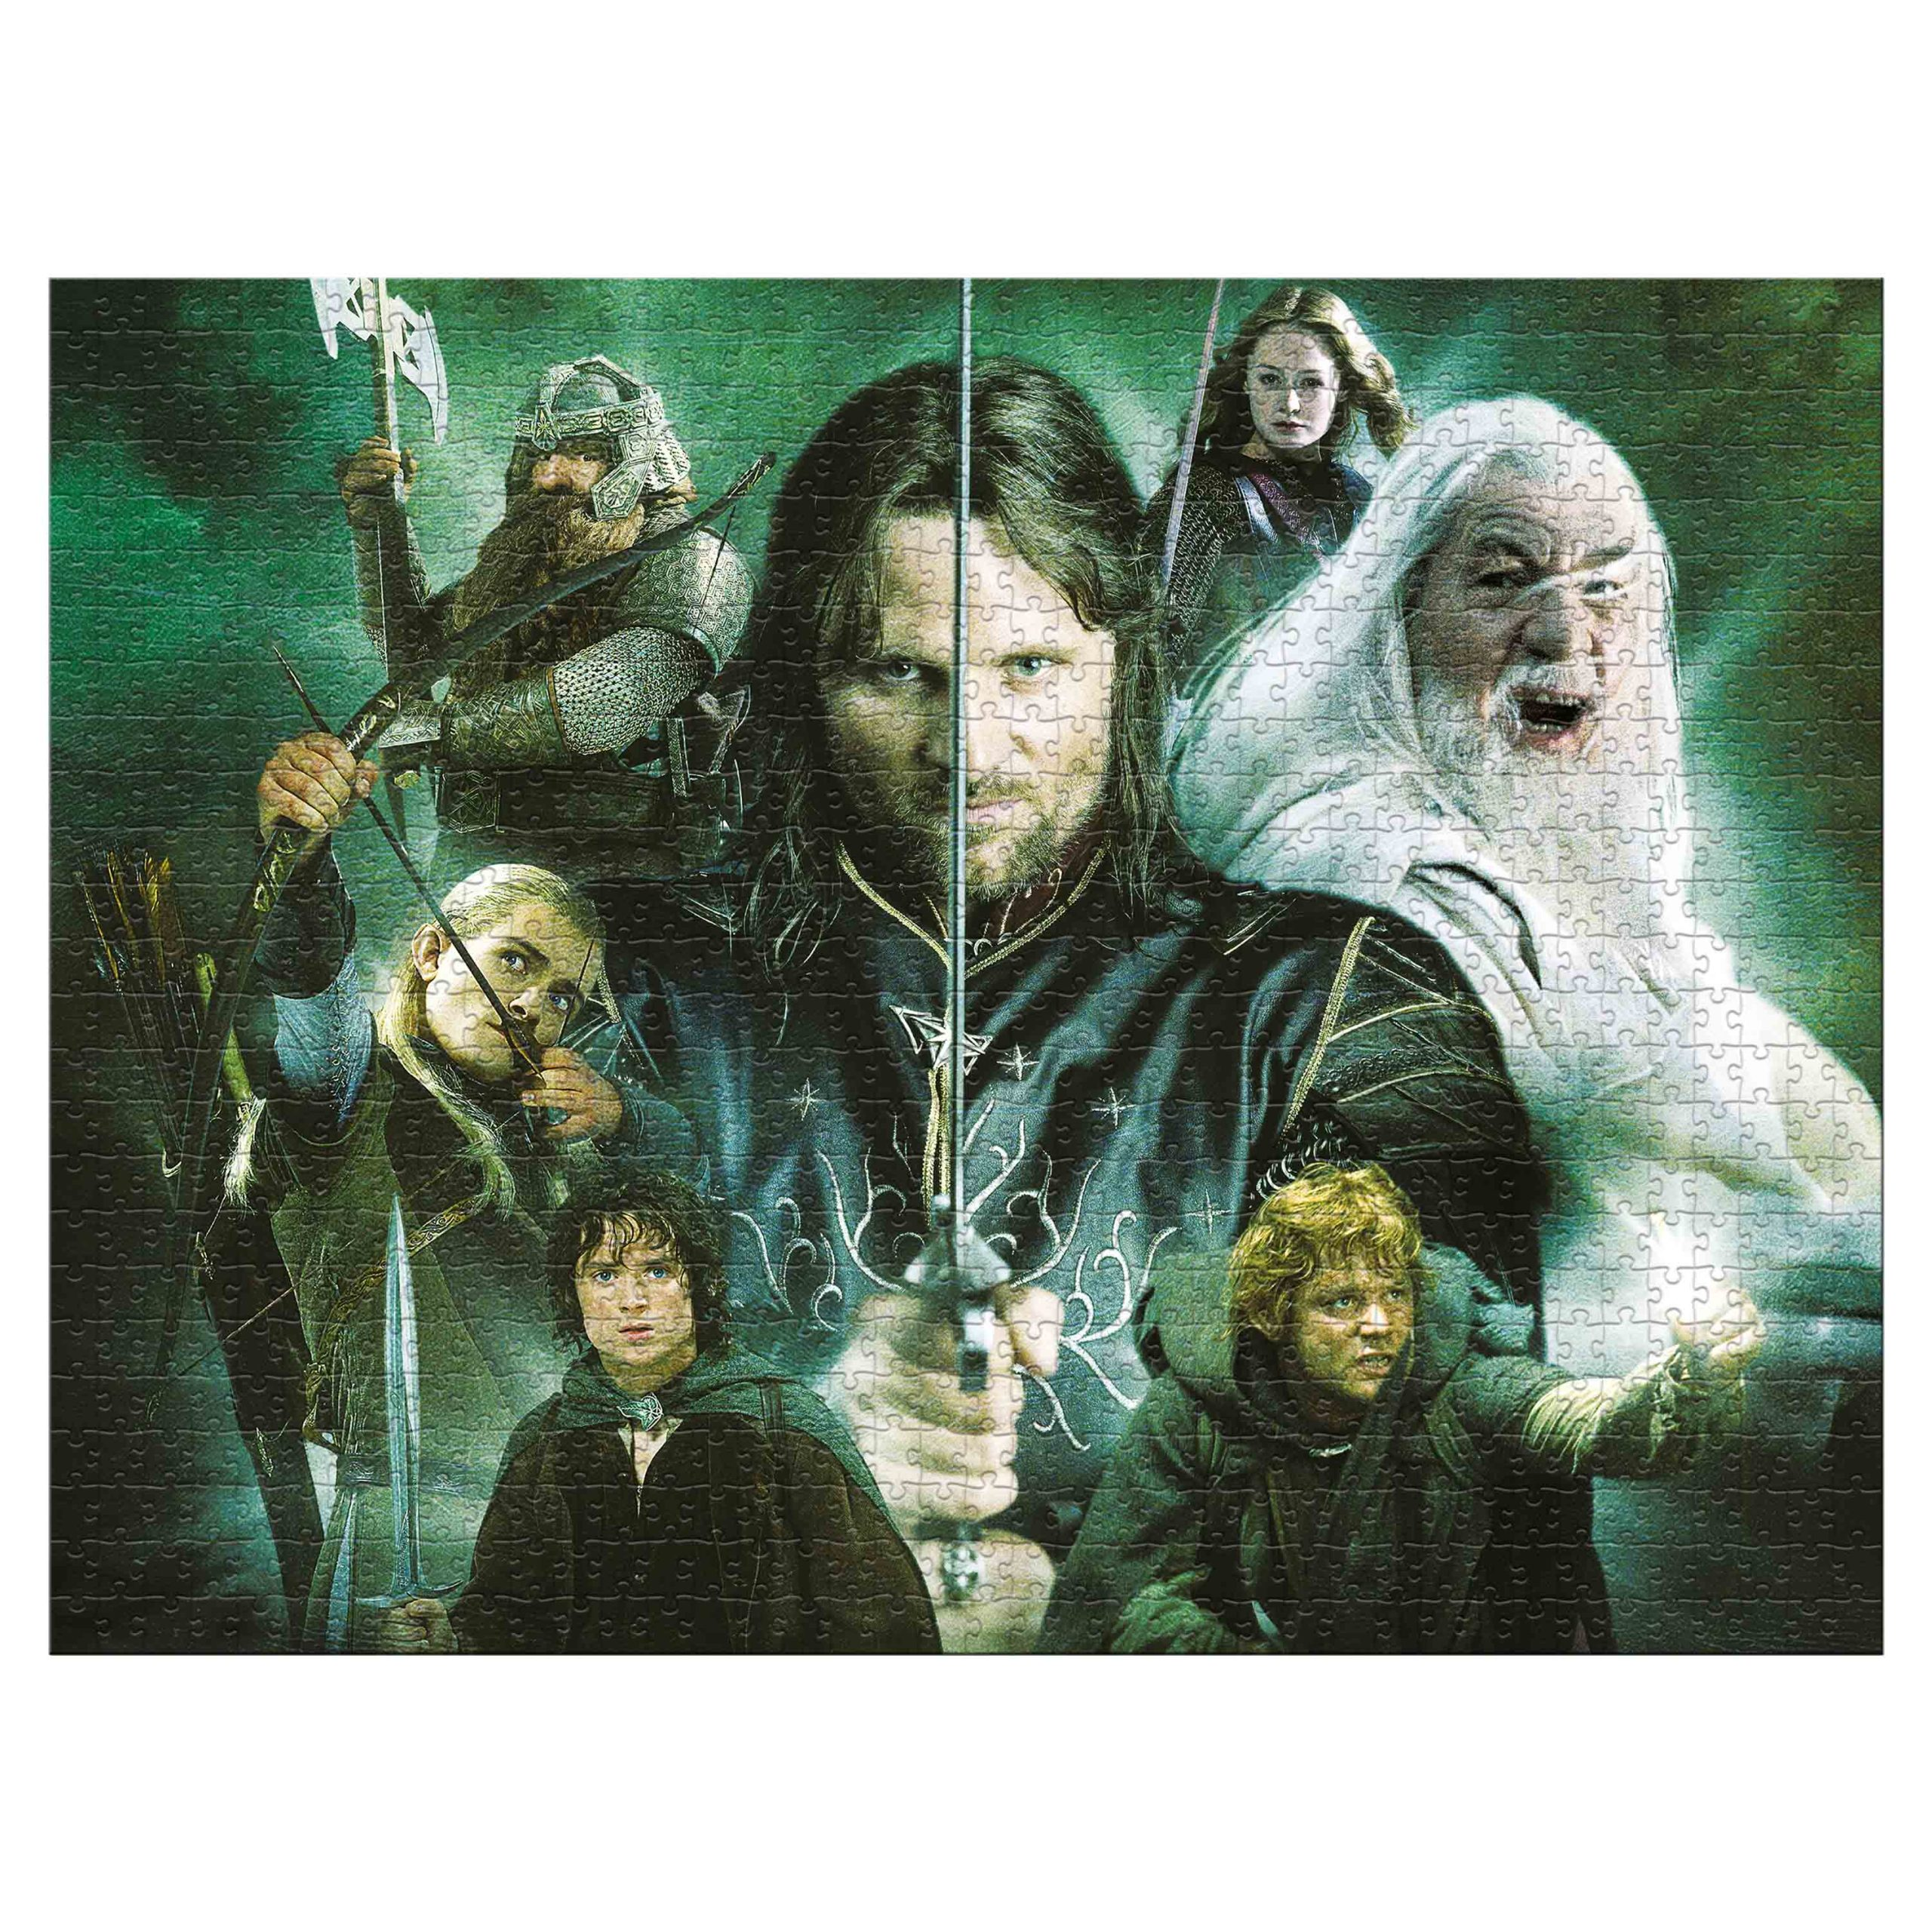 The Lord of the Rings Heroes of Middle Earth 1,000-Piece Puzzle